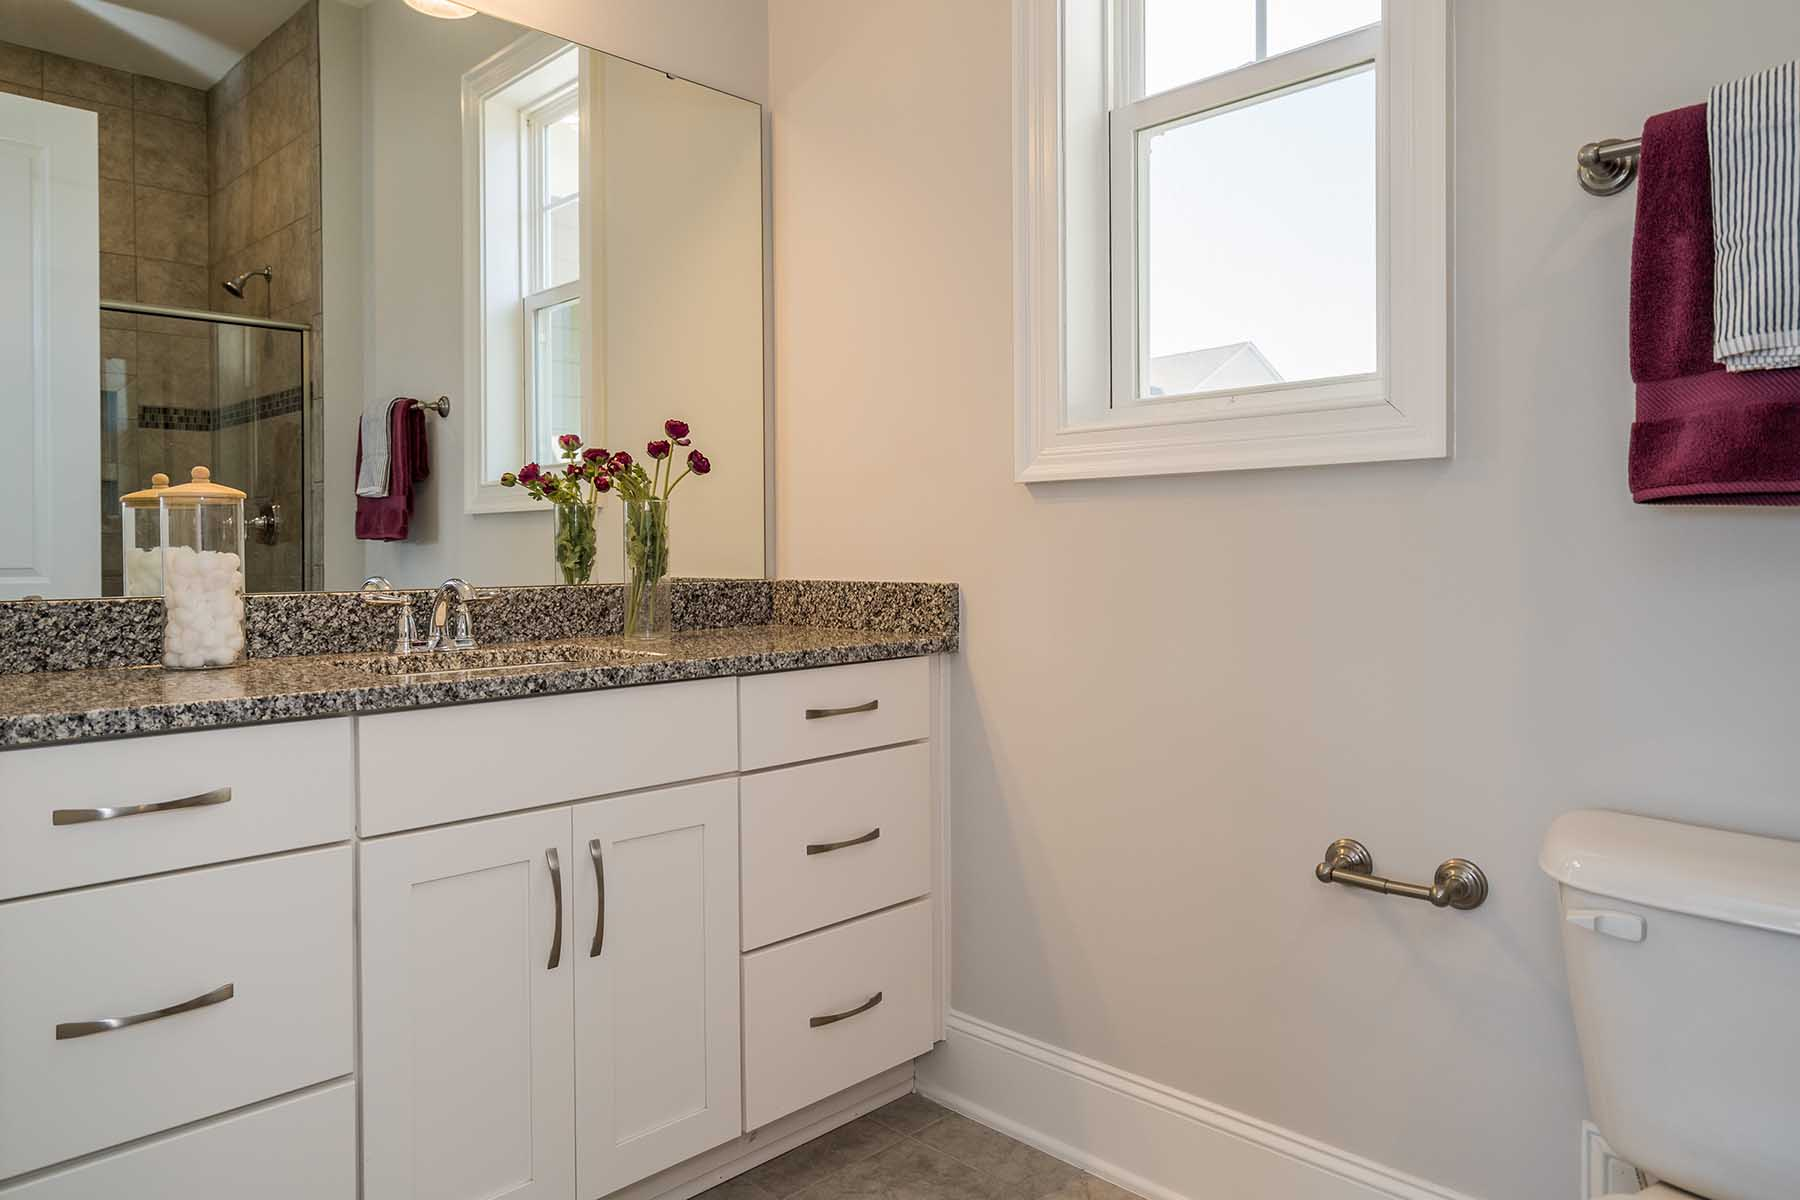 Guest Bathroom Ideas With Pleasant Atmosphere: 301 Hardy Ivy Way Holly Springs, NC 27540